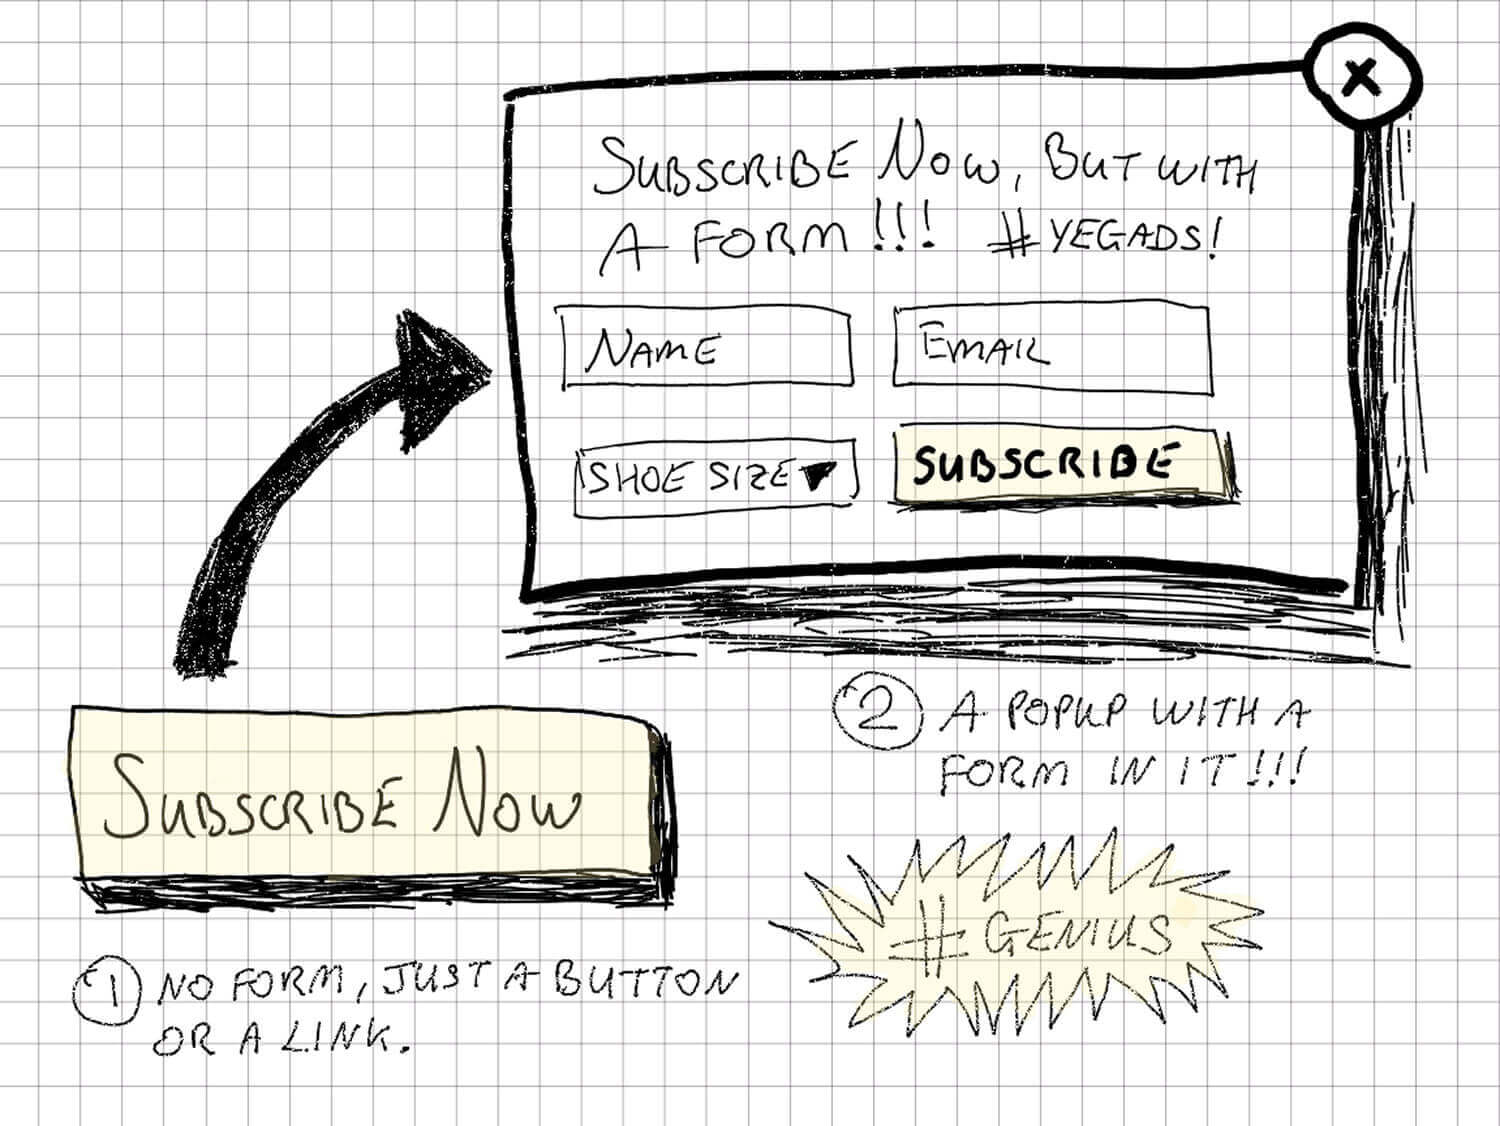 A sketch-guide showing 2 ways to get the leads to subscribe. 1- No form, just a button or a link; 2-A popup with a form in it.